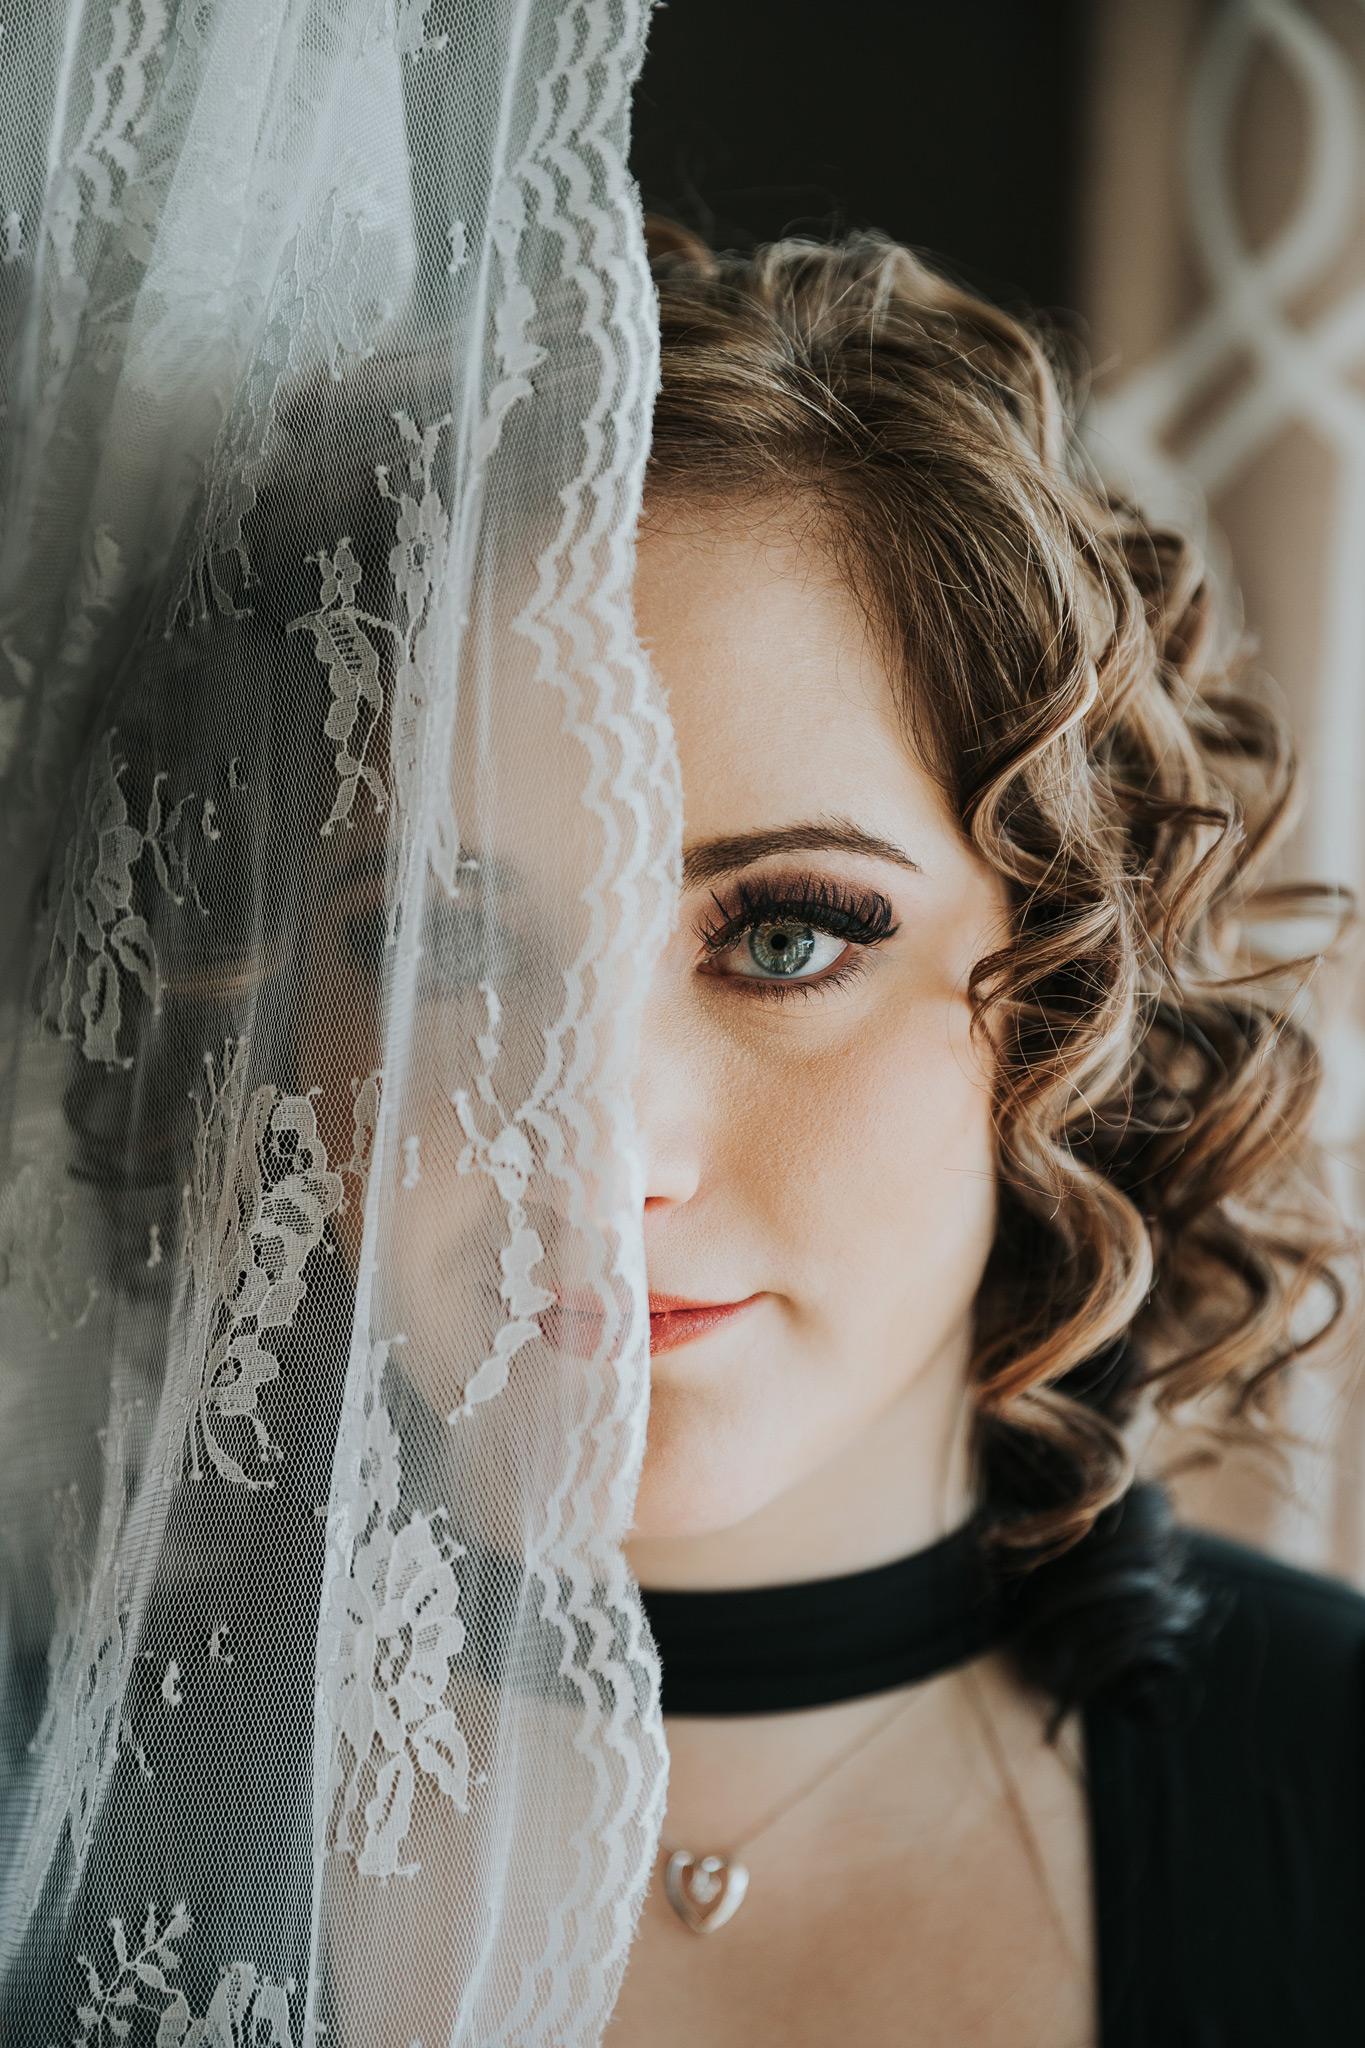 bride with lace veil half covering face boudoir photo